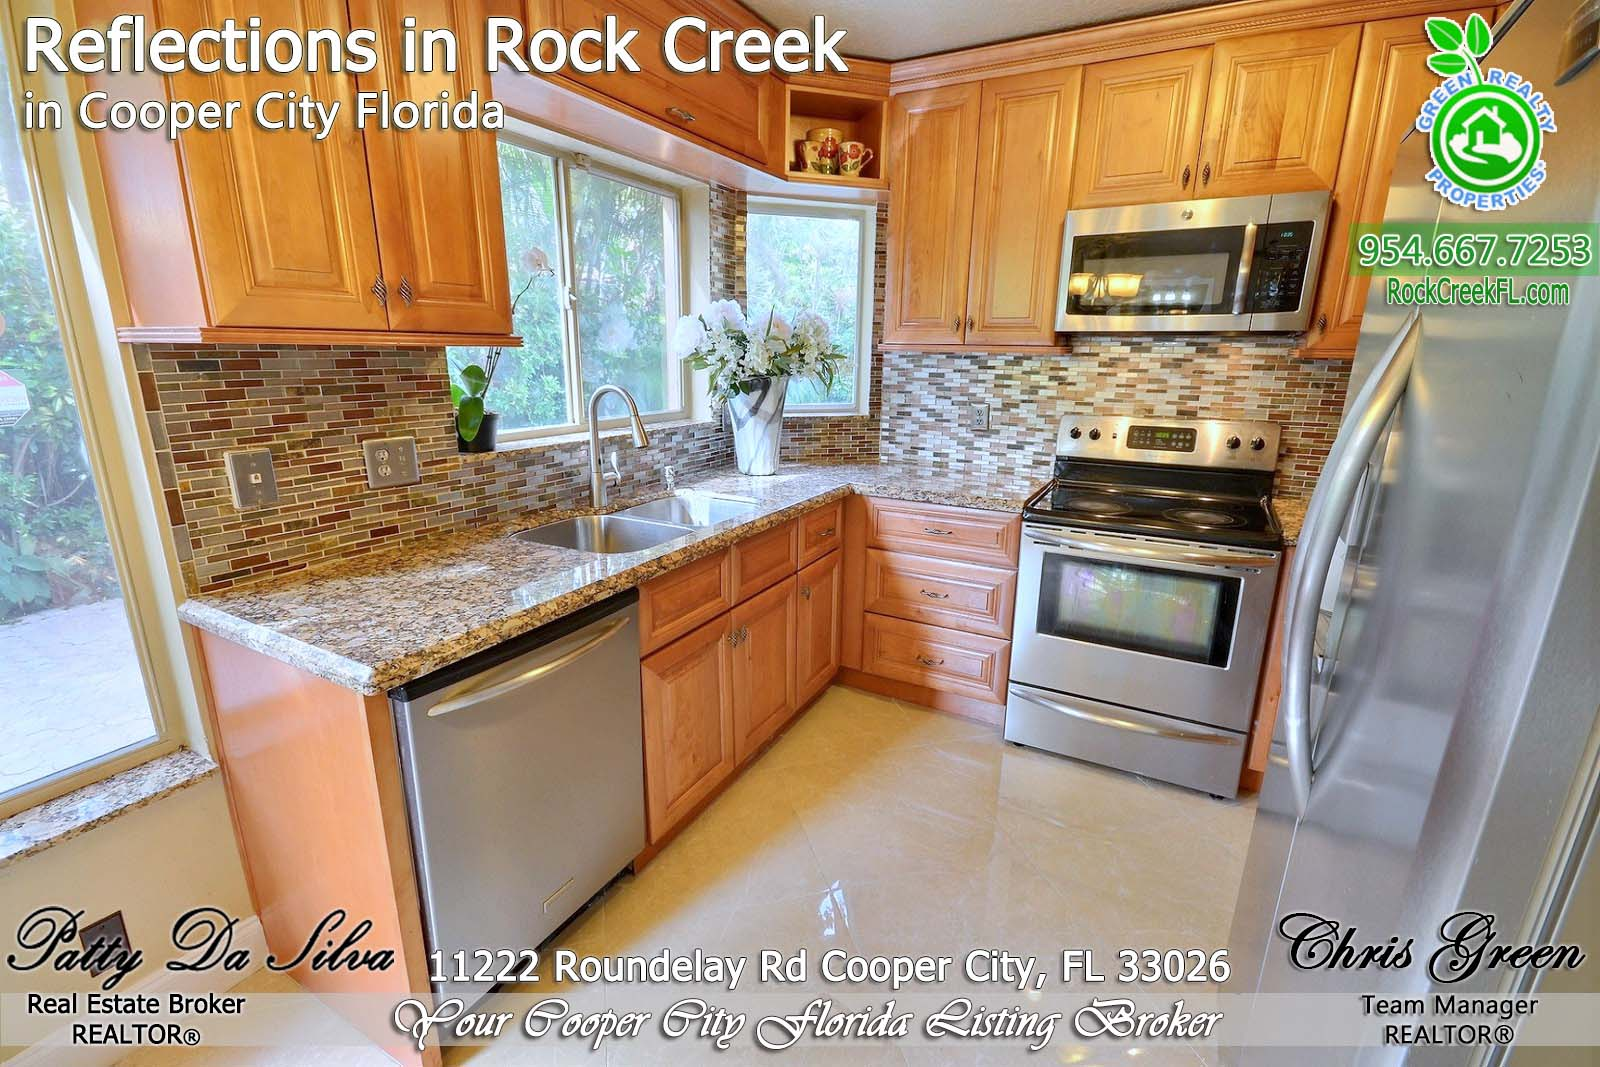 Cooper City Homes For Sale - Reflections in Rock Creek Homes Fo Sale (11)